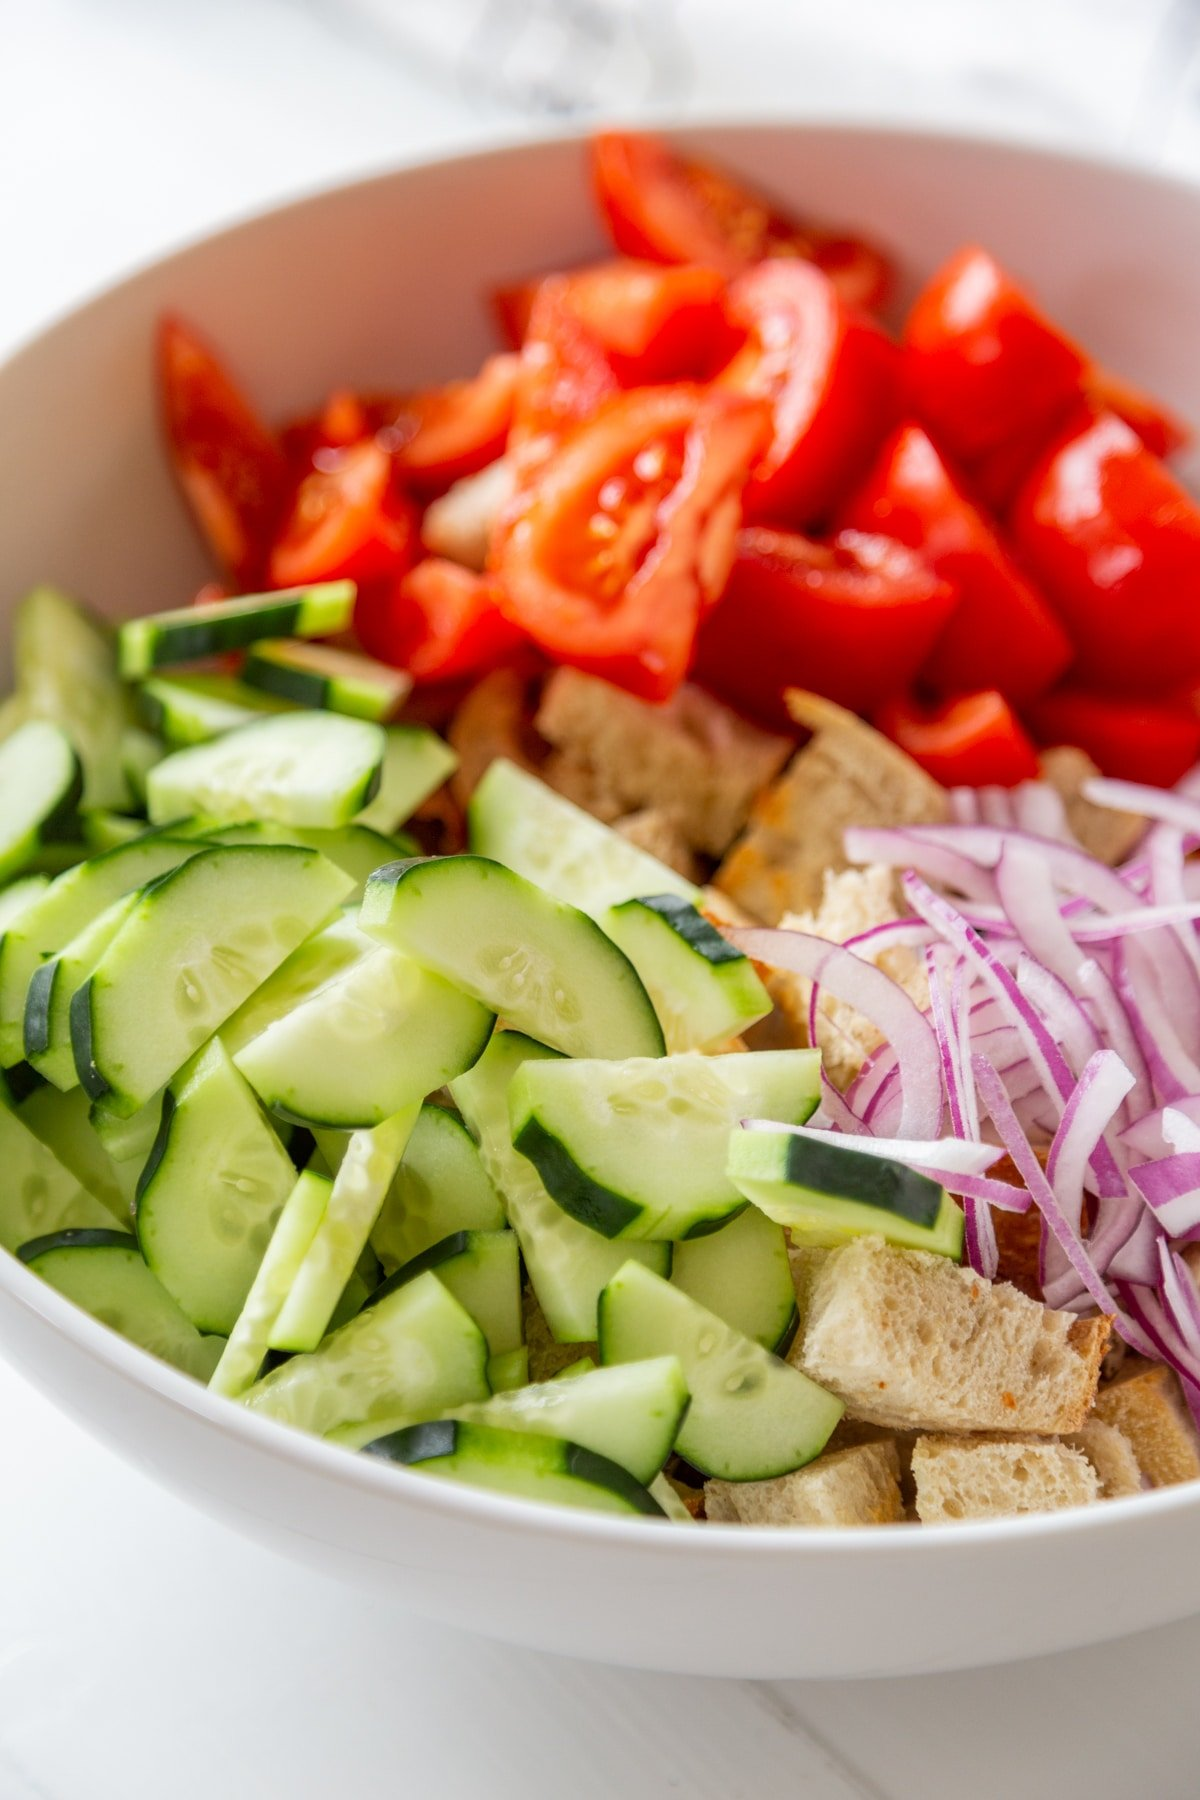 A large white bowl filled with croutons, sliced cucumber, tomatoes, and red onion.